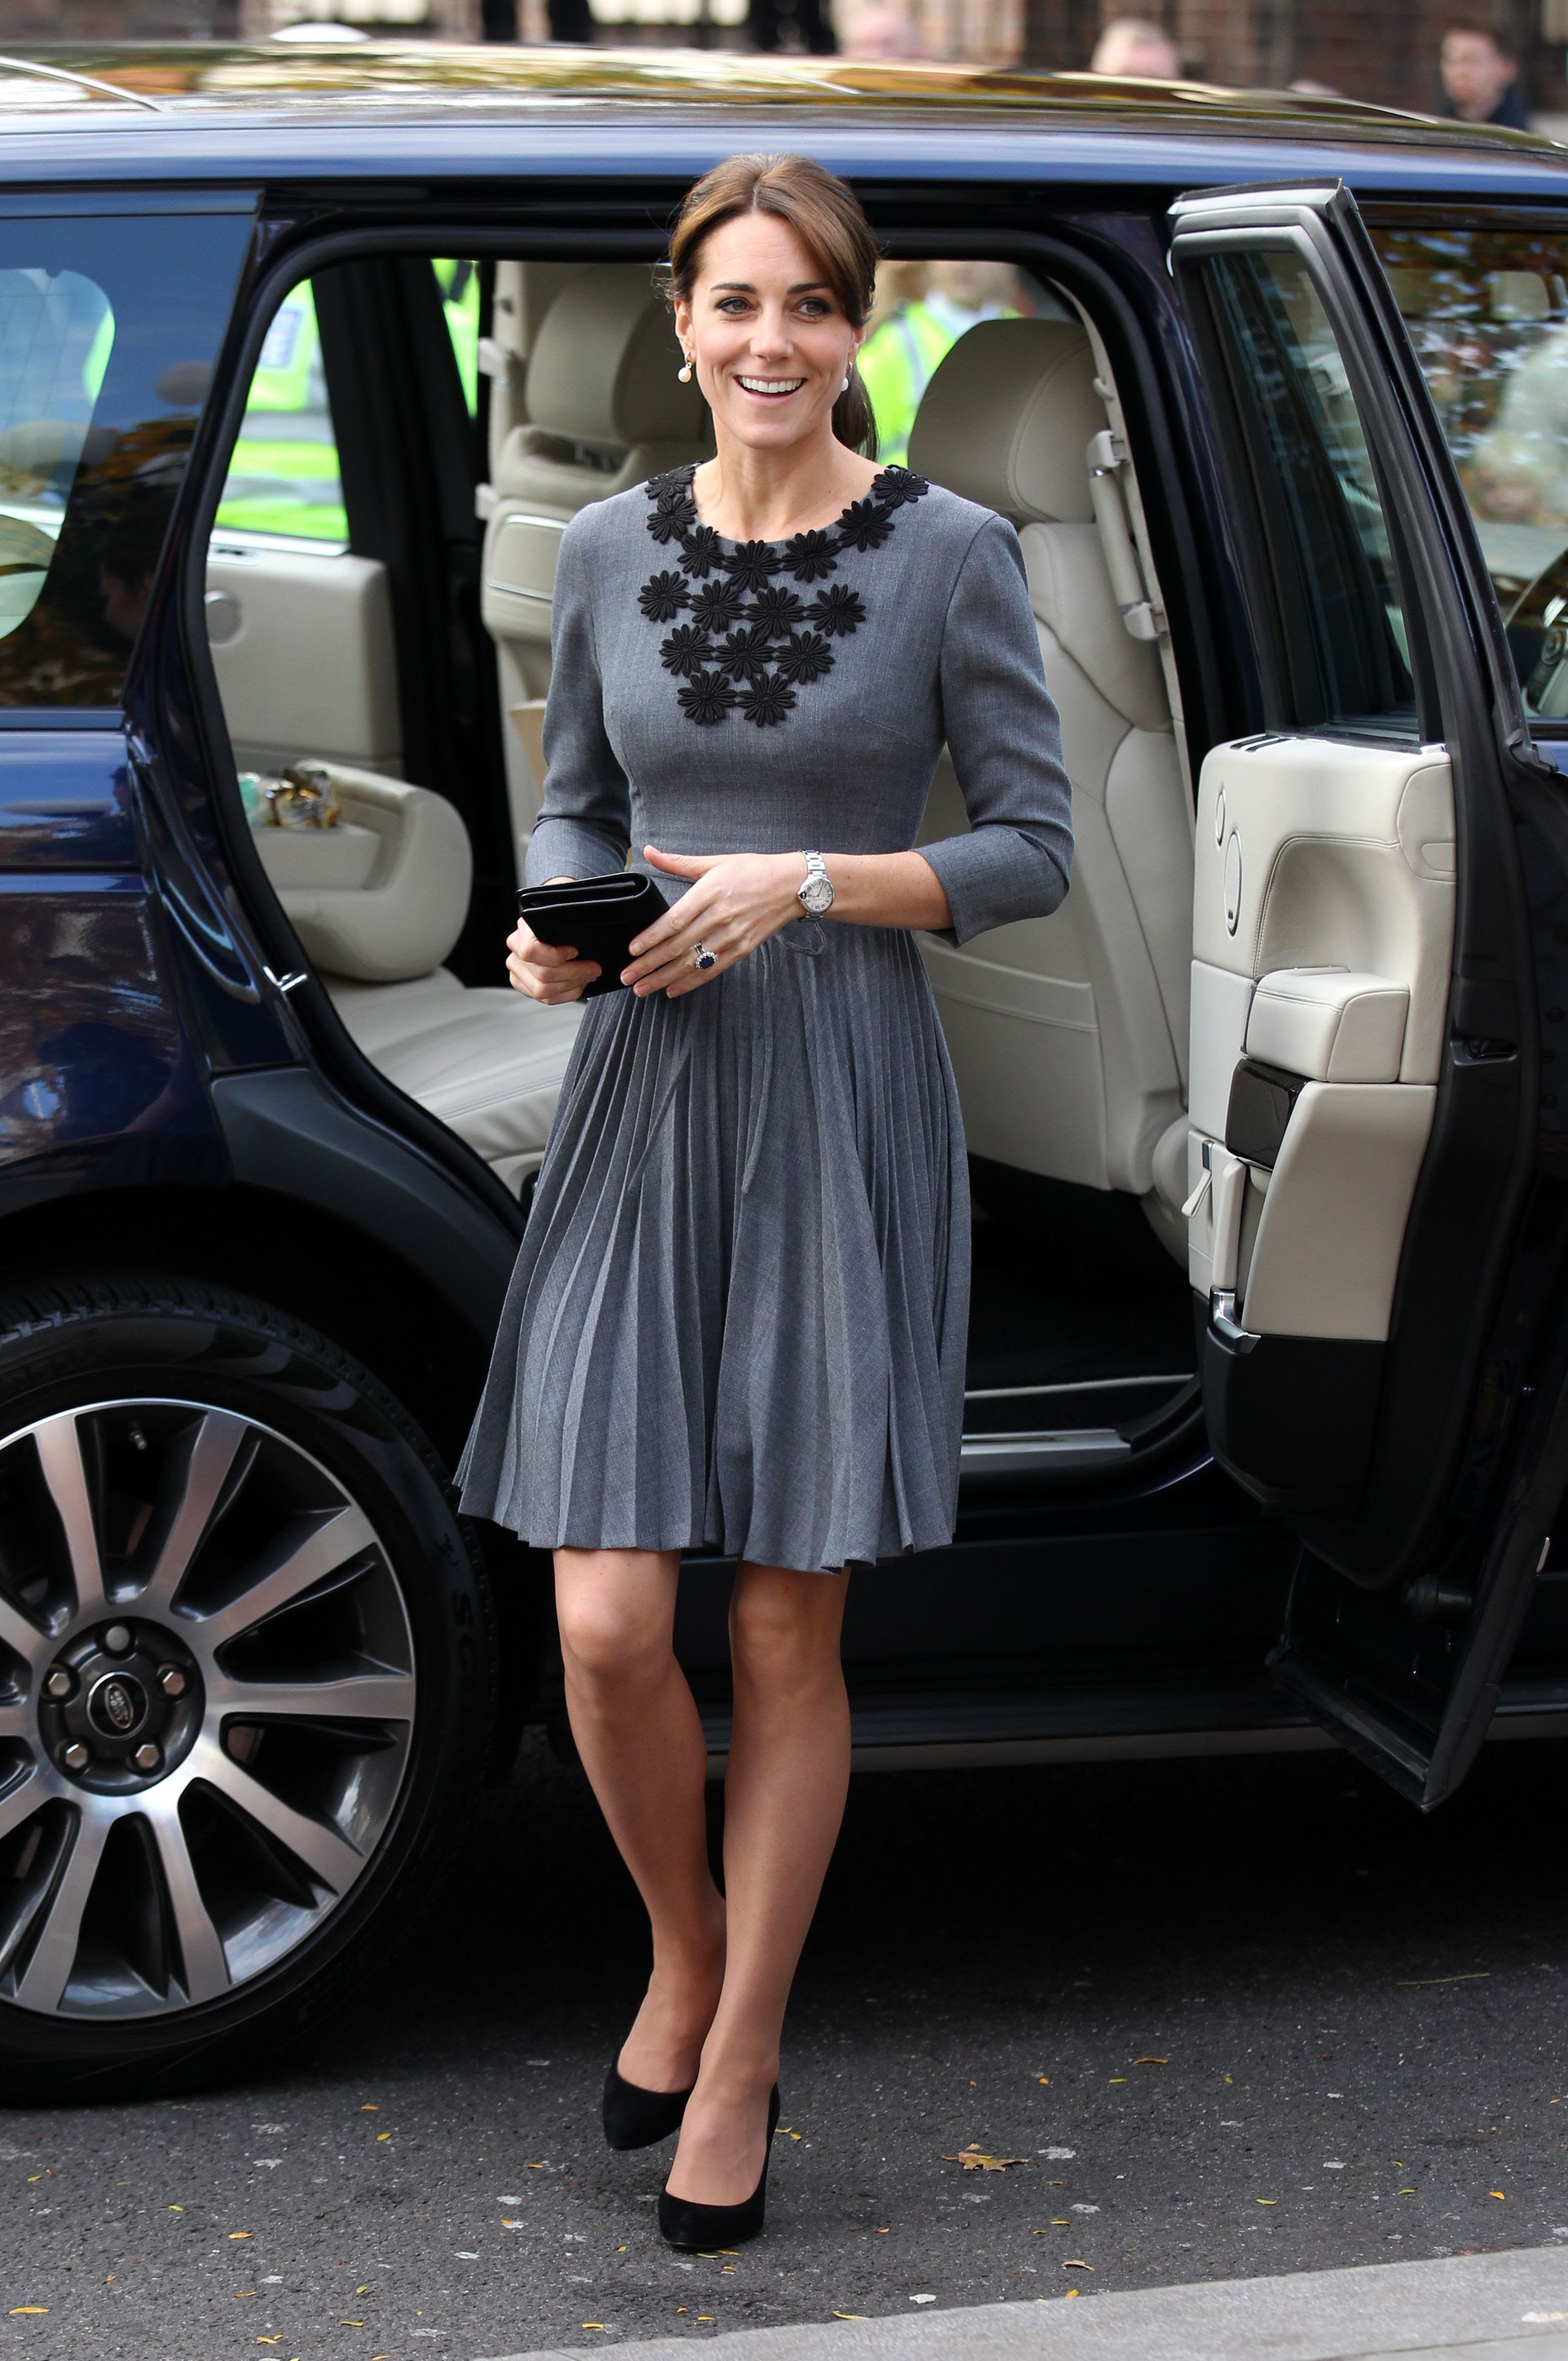 kate middleton style  fashion and beauty pictures of kate